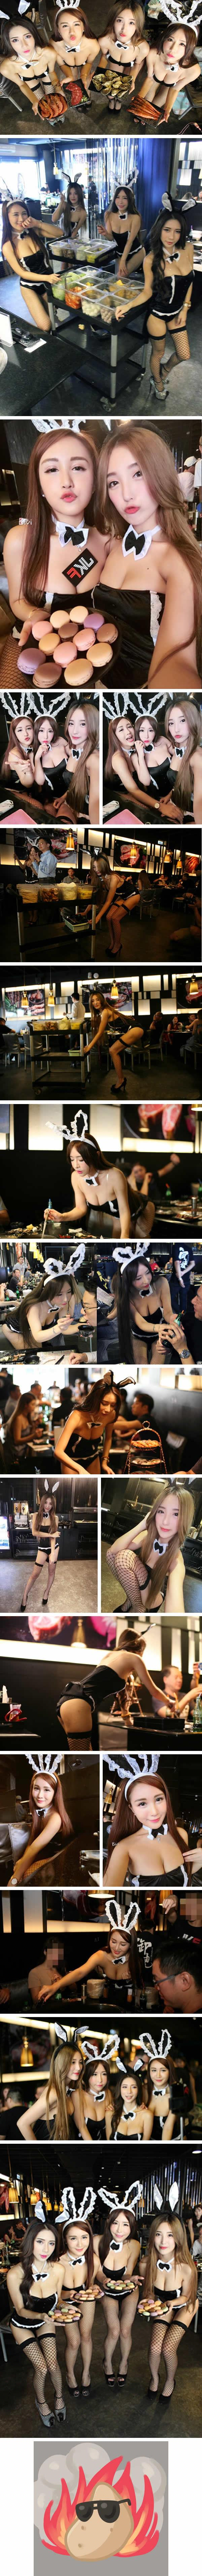 Restuarant in Taiwan Has Sexy Girls Waitress in Playboy Bunny Costumes by crenk